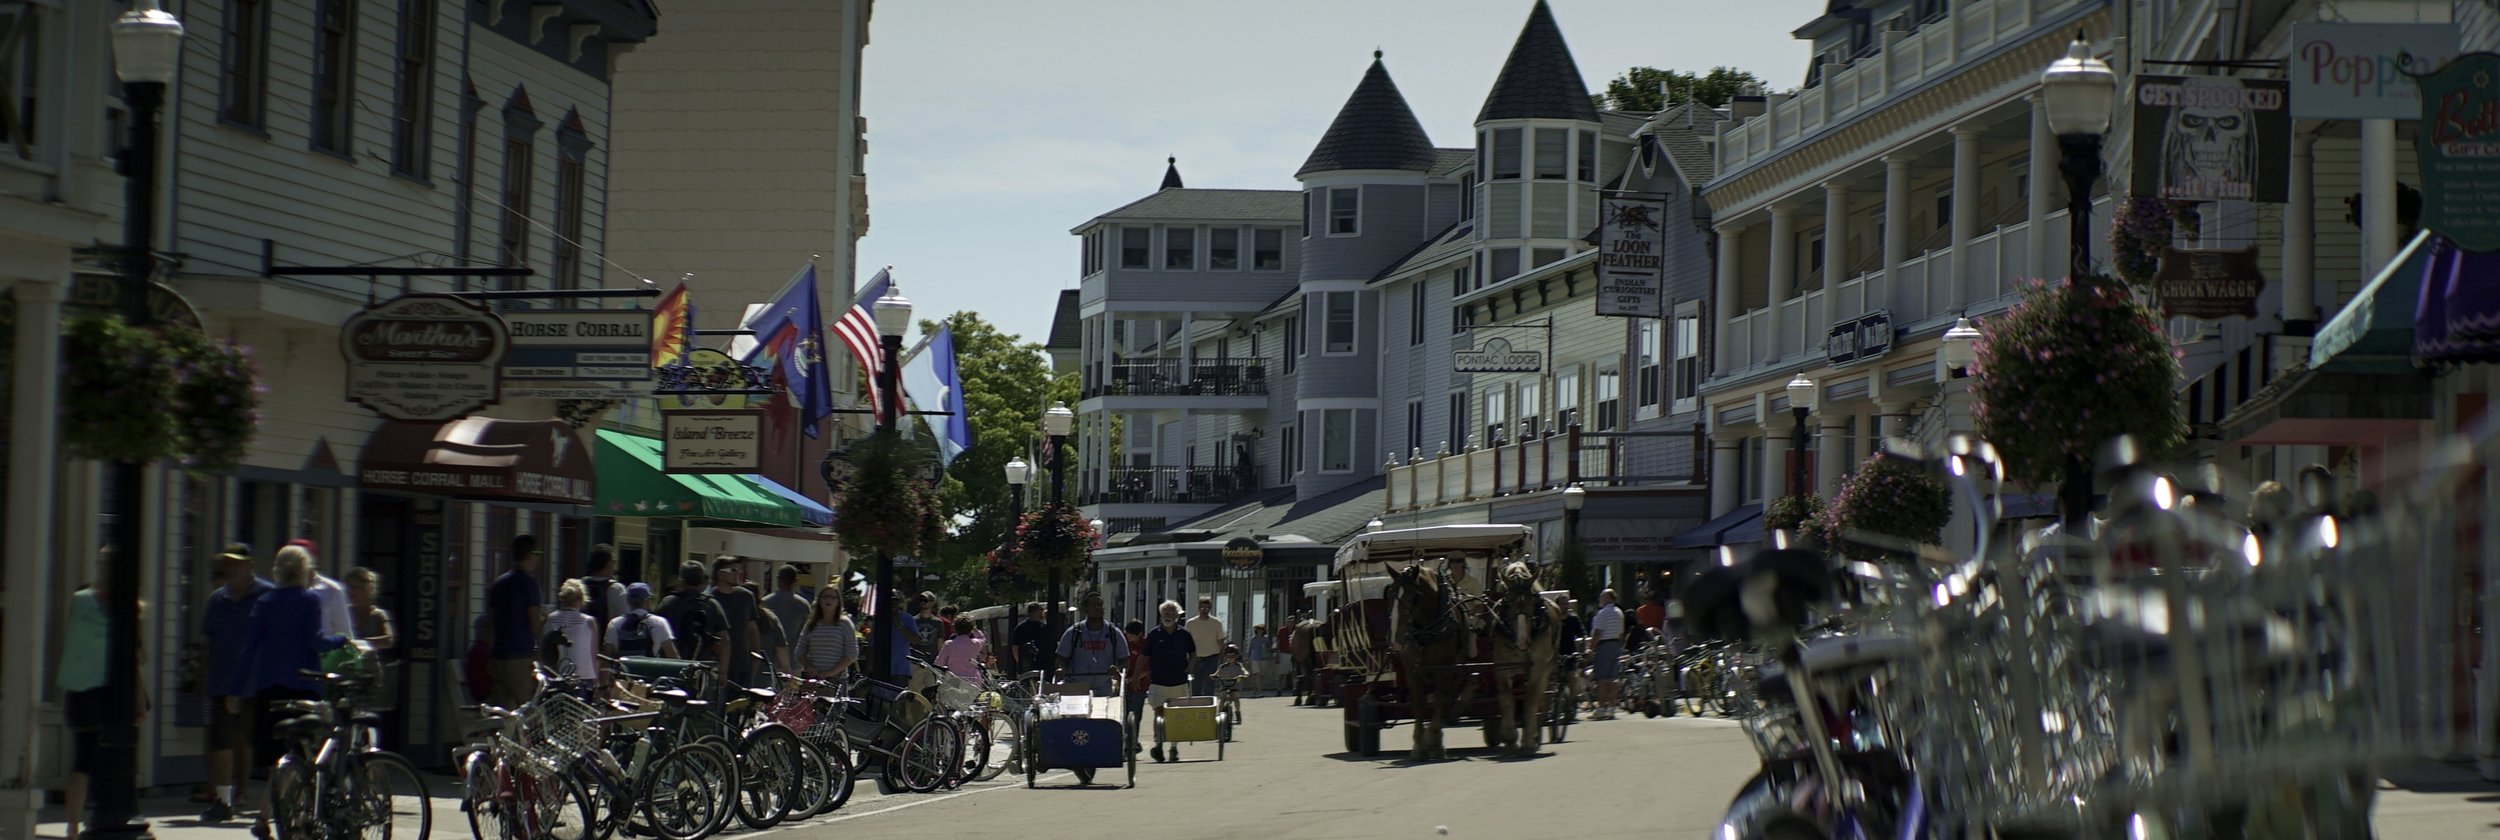 Lomo 100mm anamorphic lens | Downtown Mackinac Island, MI - Photo by: Keith Nickoson